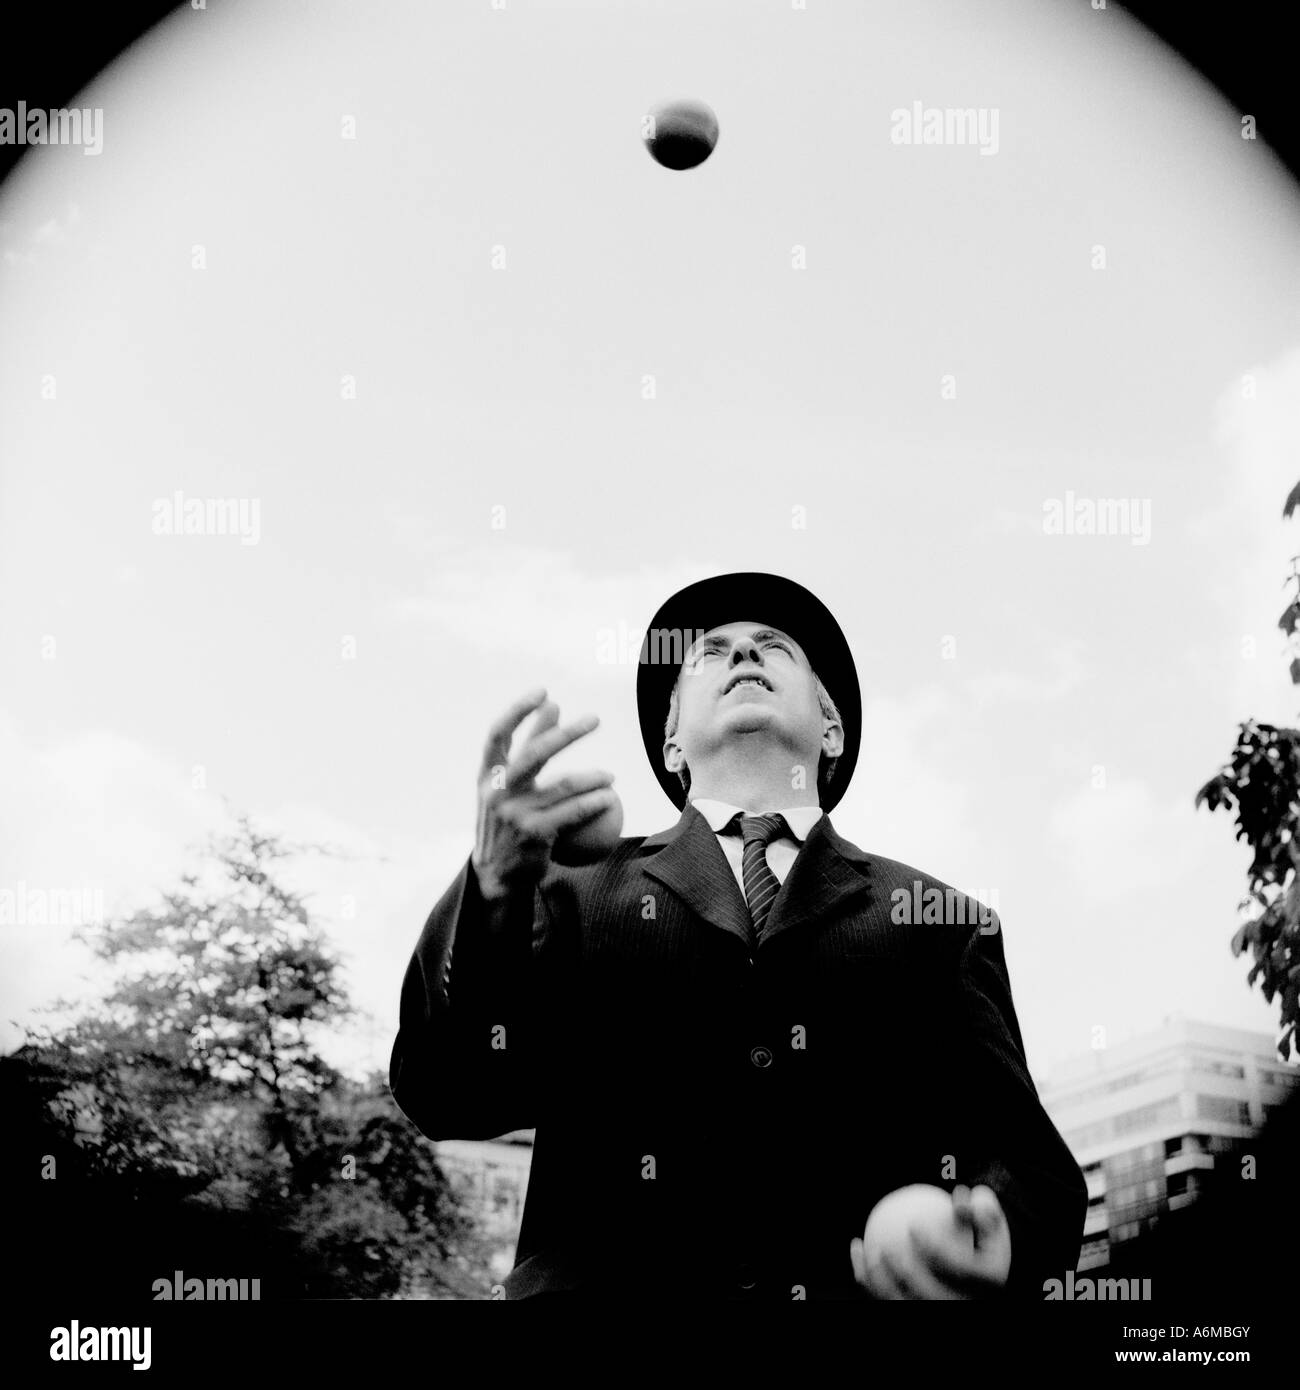 City gent in bowler hat juggling - Stock Image